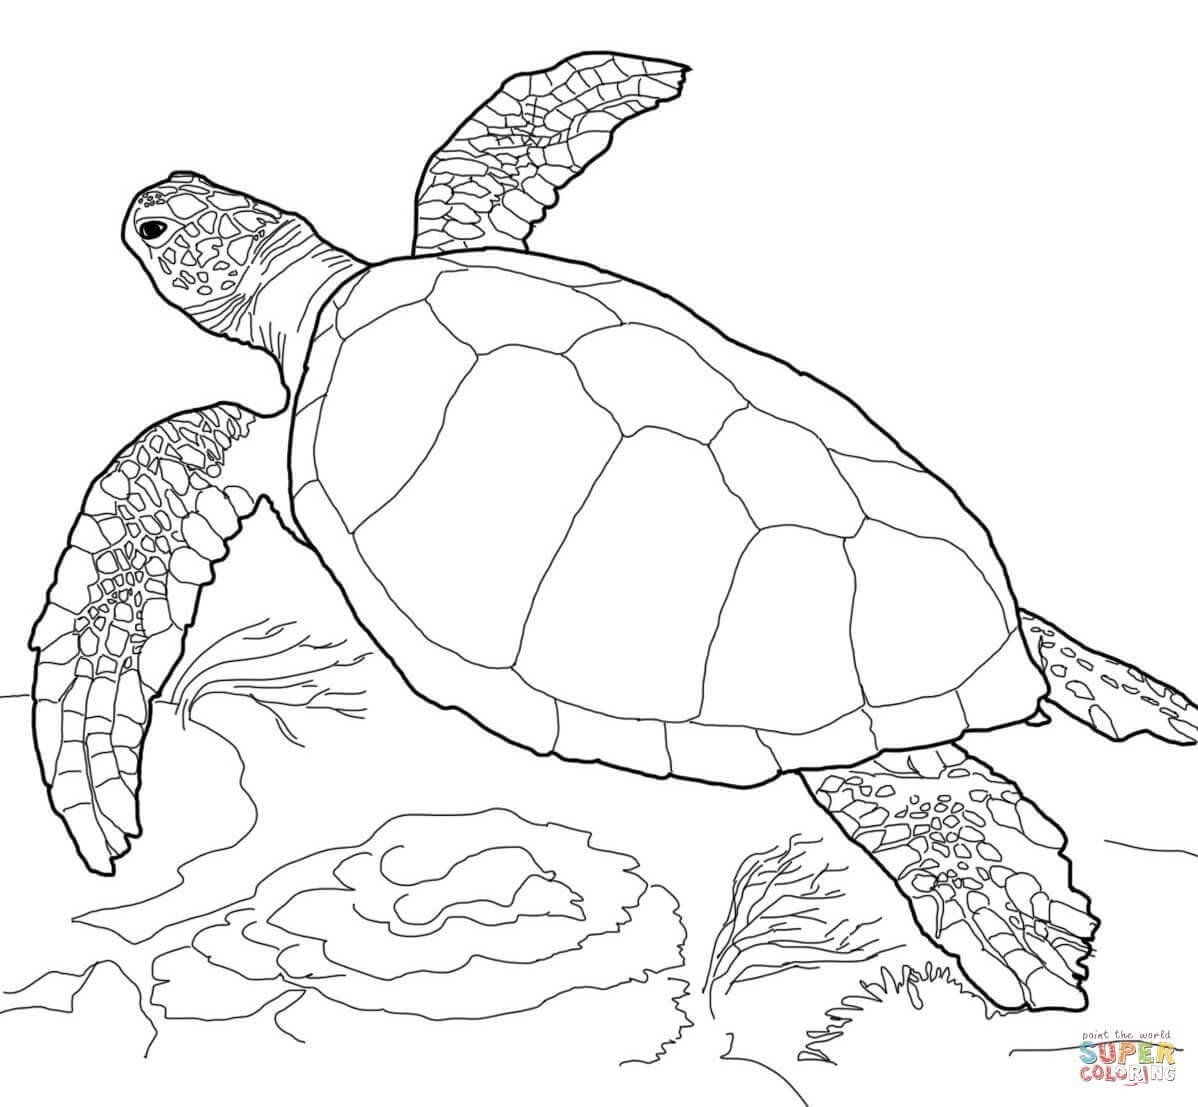 Sea Turtle Coloring Pages Beautiful Sea Turtle Coloring Page All Turtle Coloring Pages Turtle Drawing Animal Coloring Pages